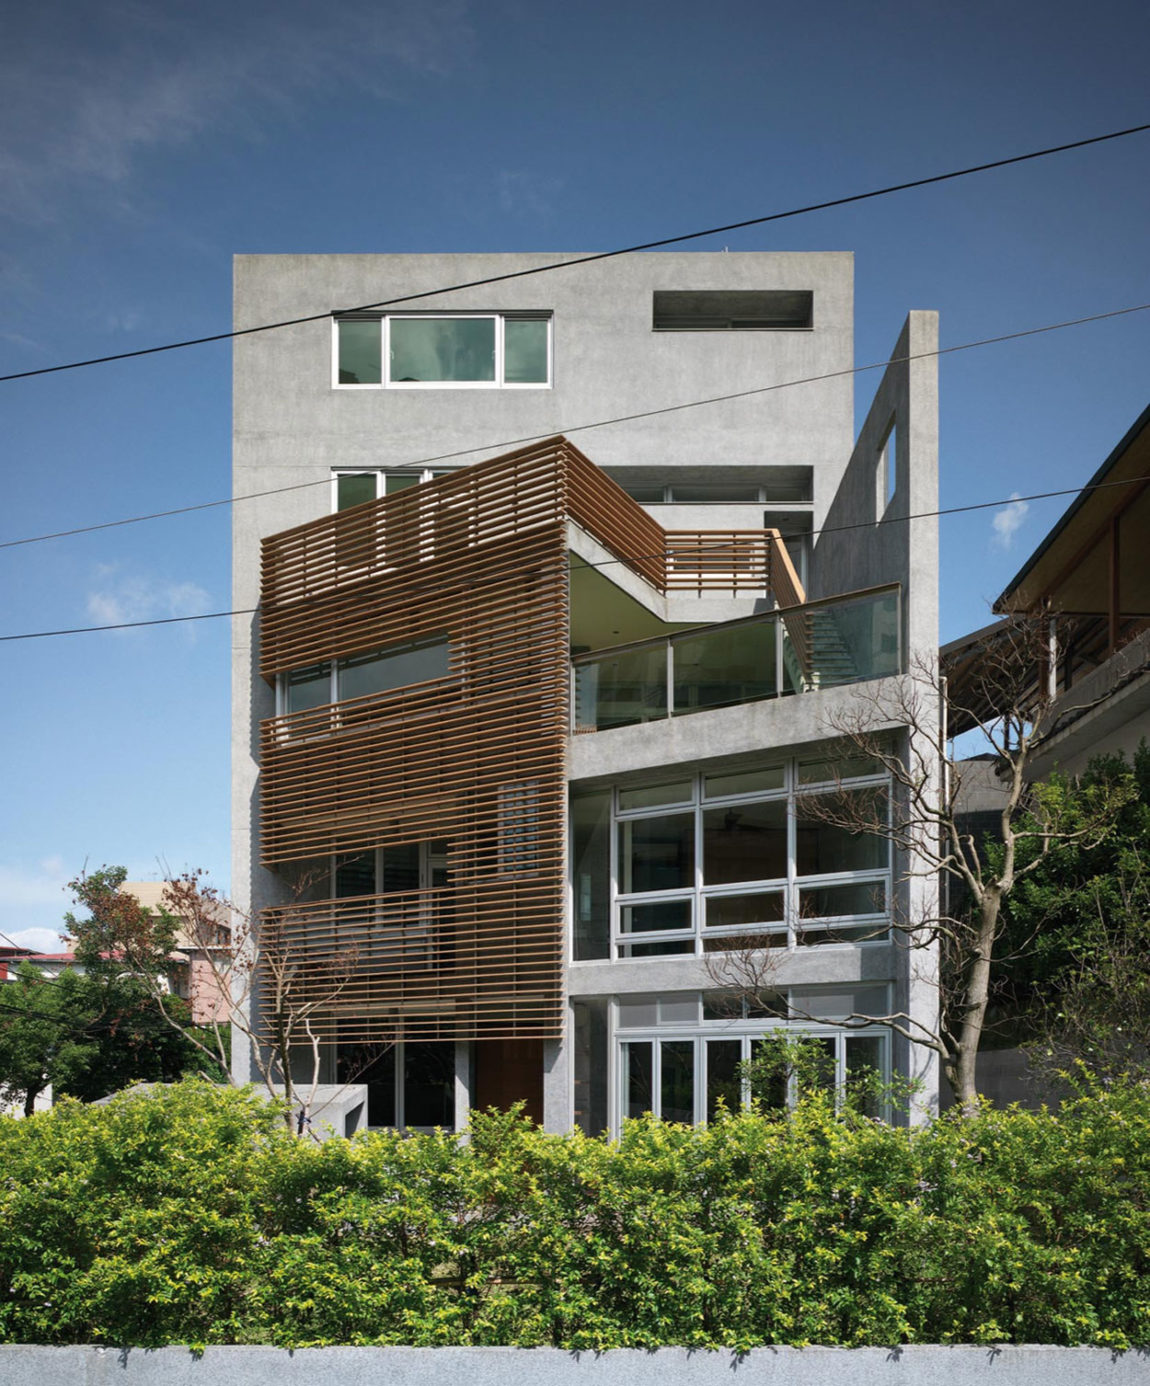 YS114 House by Preposition Architecture (1)